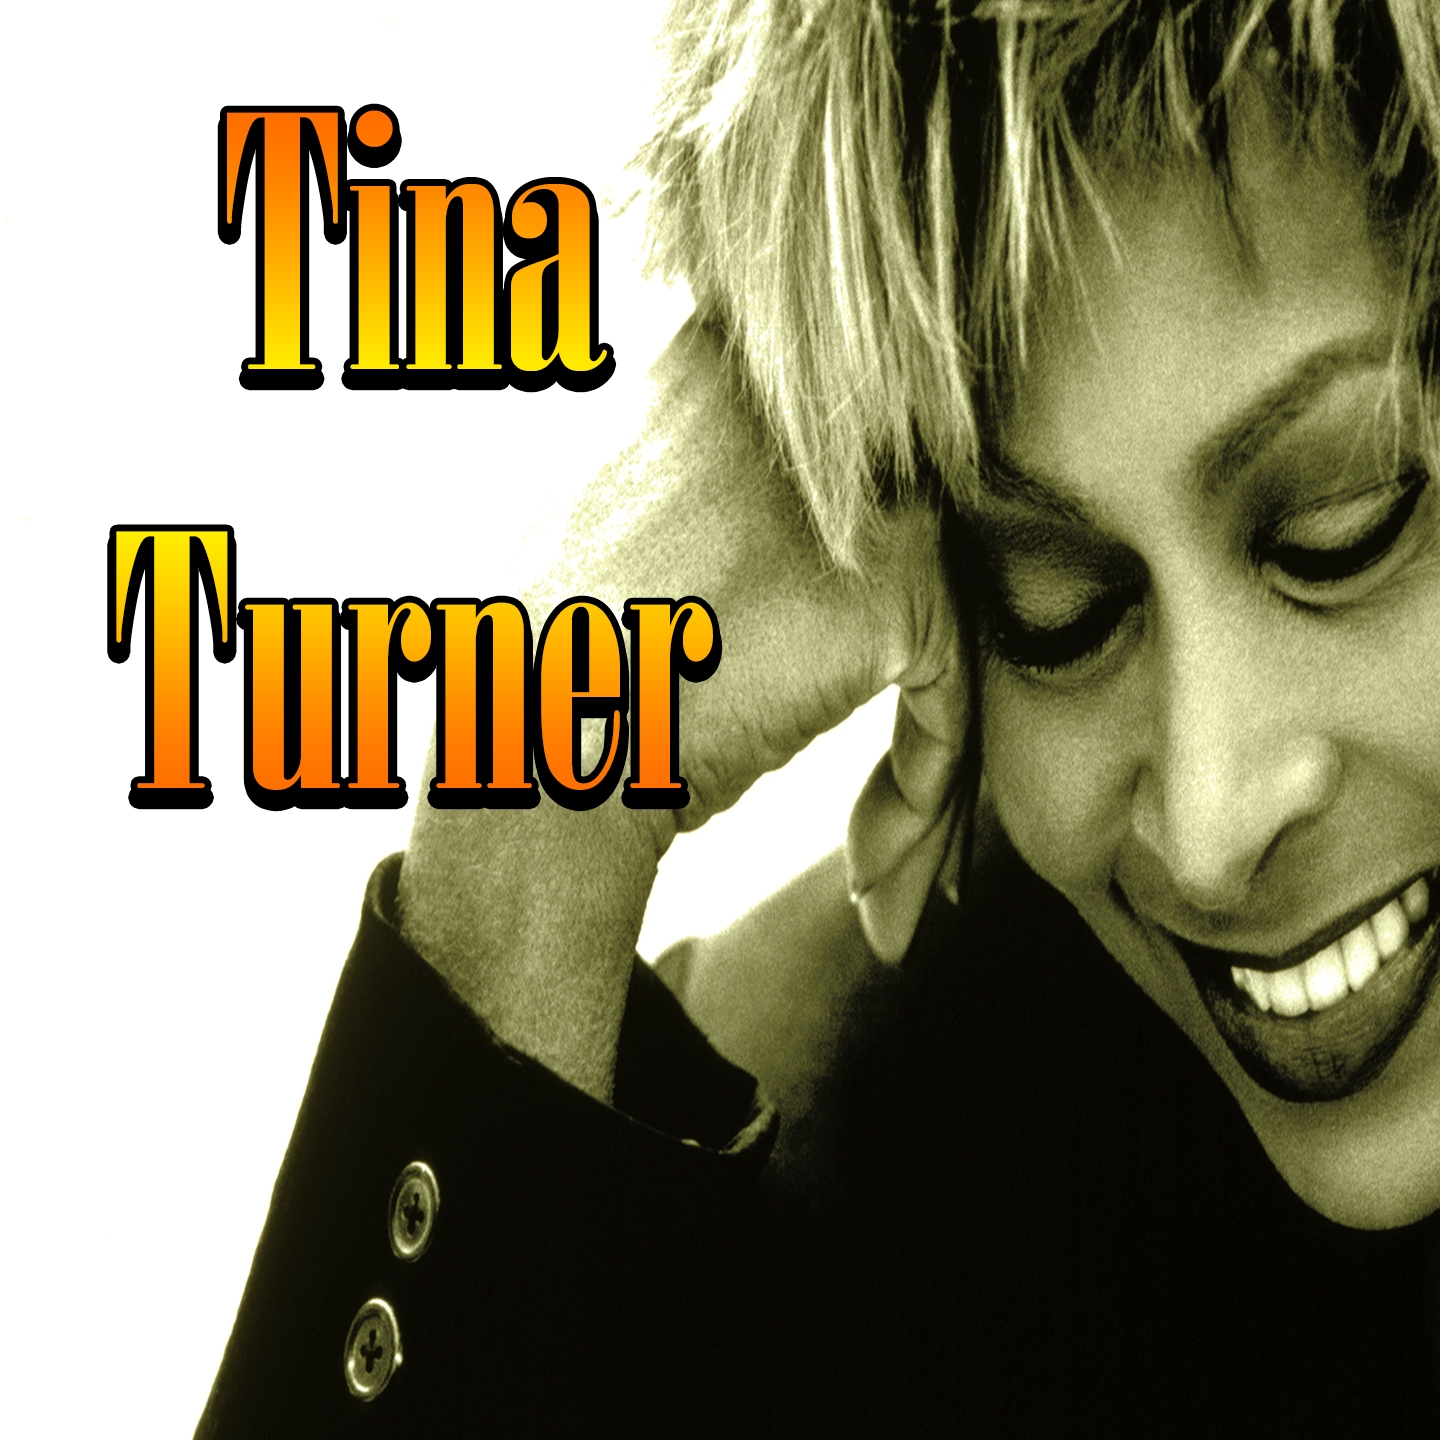 Tina Turner Radio Listen To Free Music Amp Get The Latest